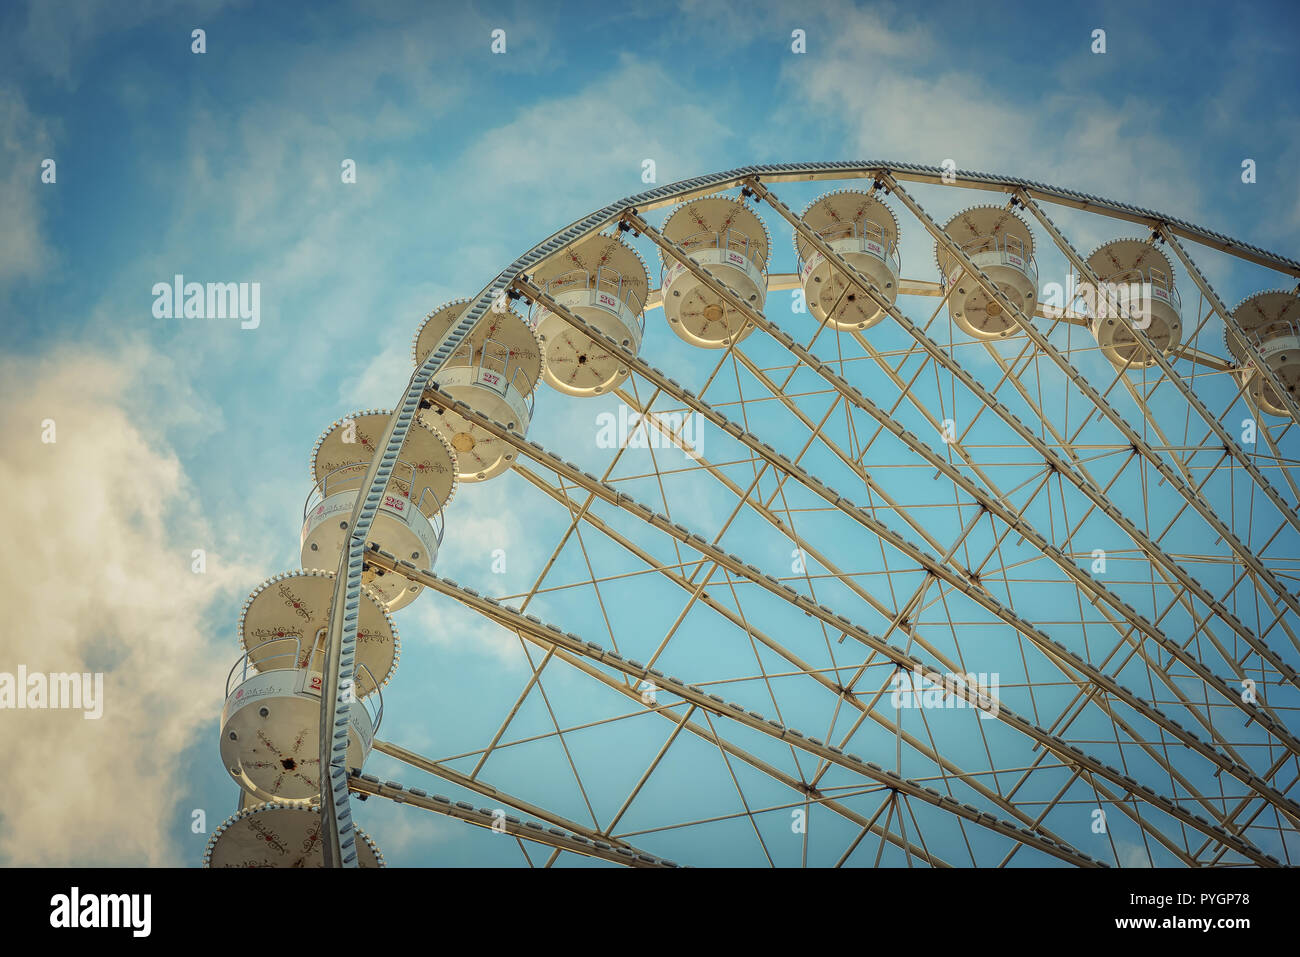 Riesenrad in Hannover - Stock Image